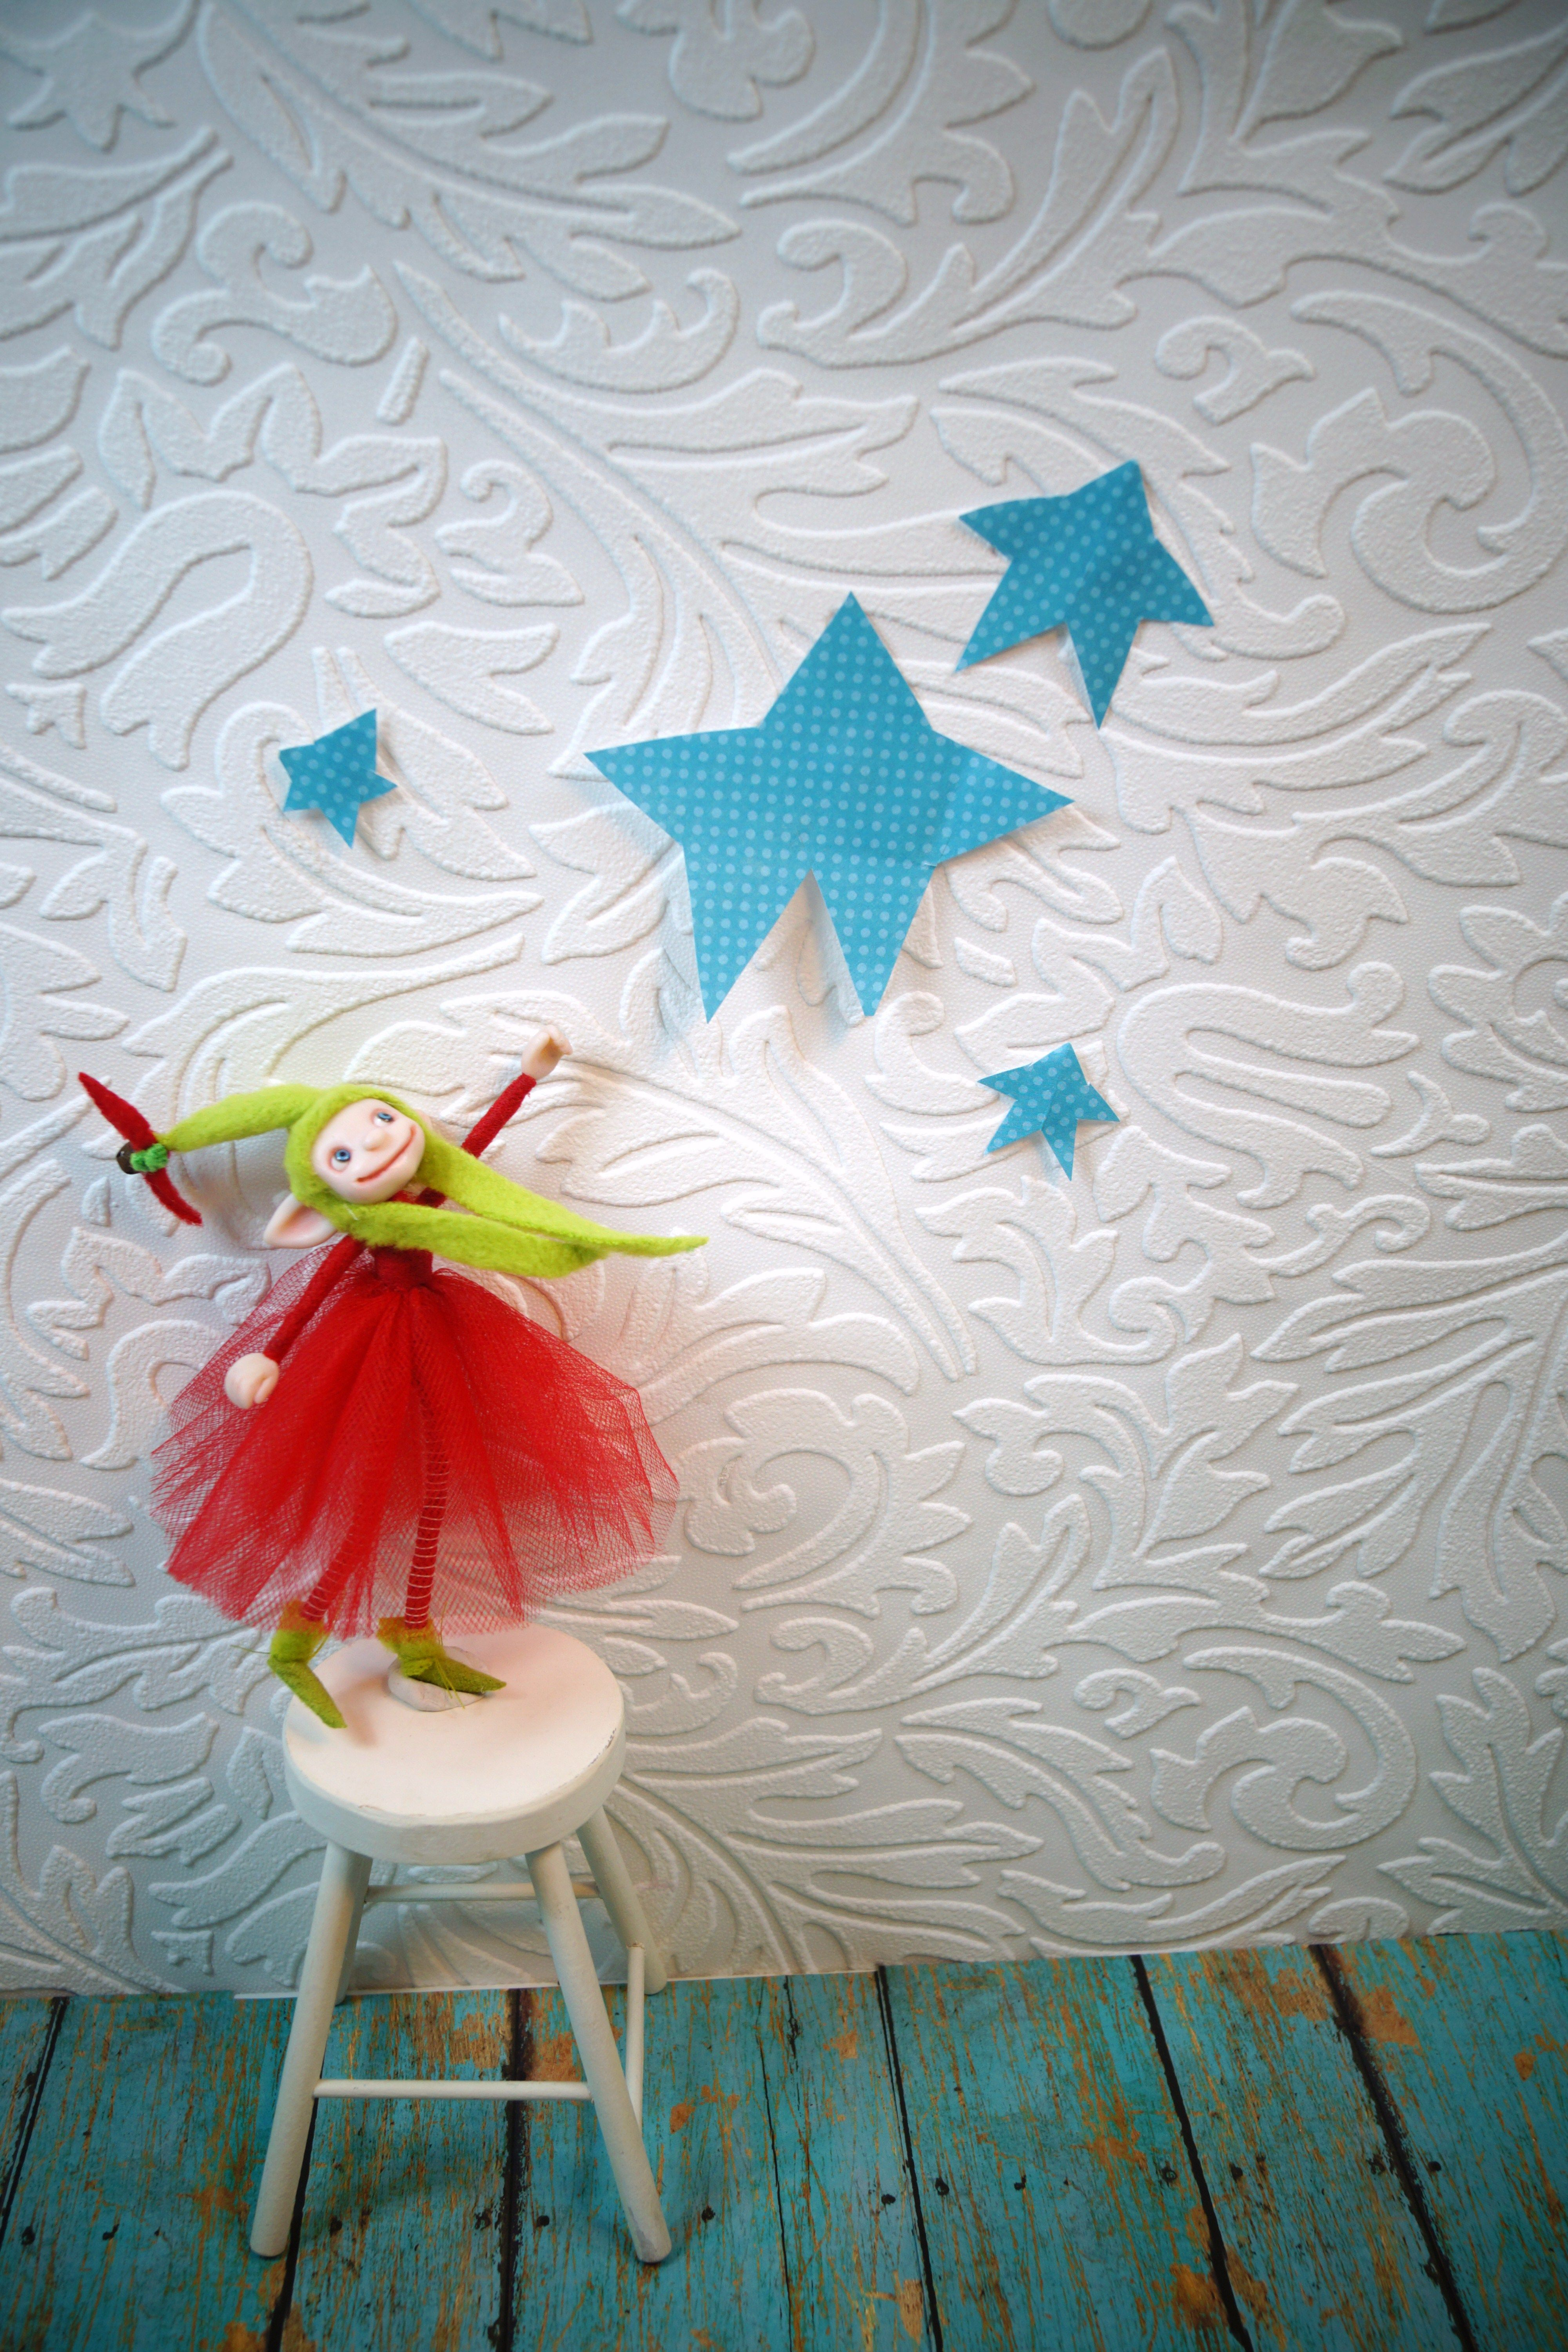 Reach for the star ... one of a kind polymer clay art dolls by DinkyDarlings fairies elves gnomes and the like ...